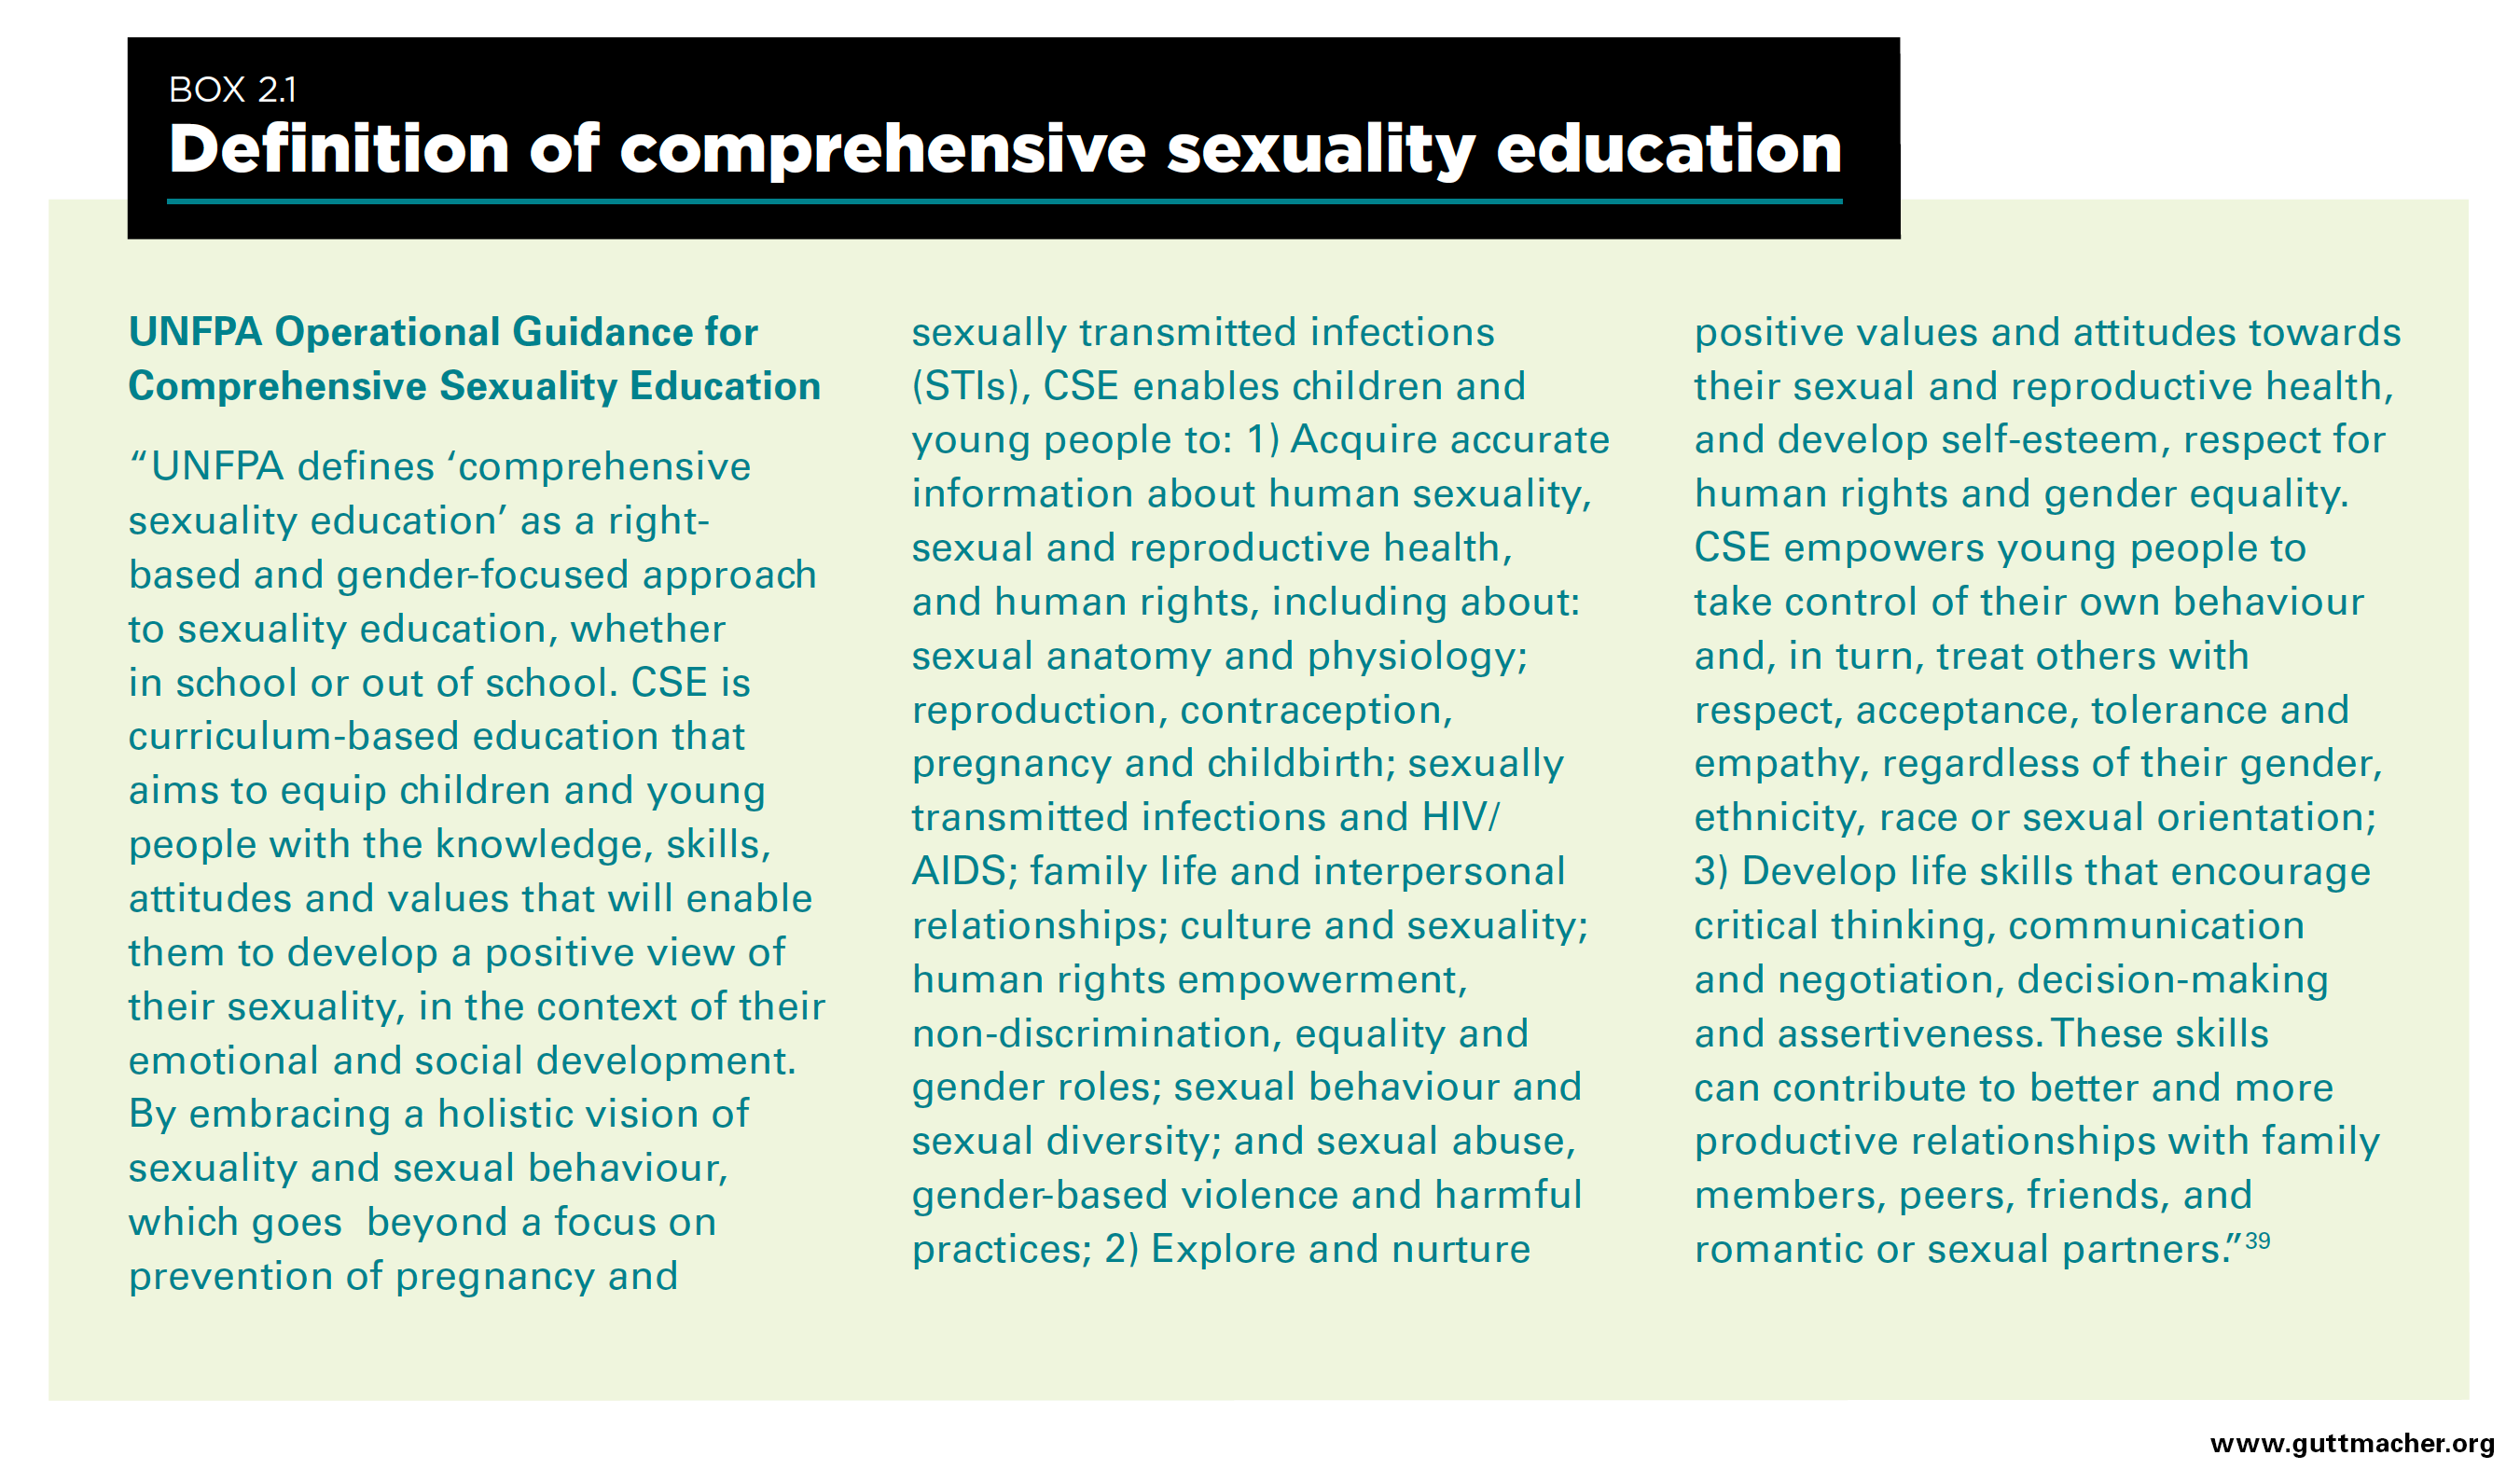 Sexuality education defined